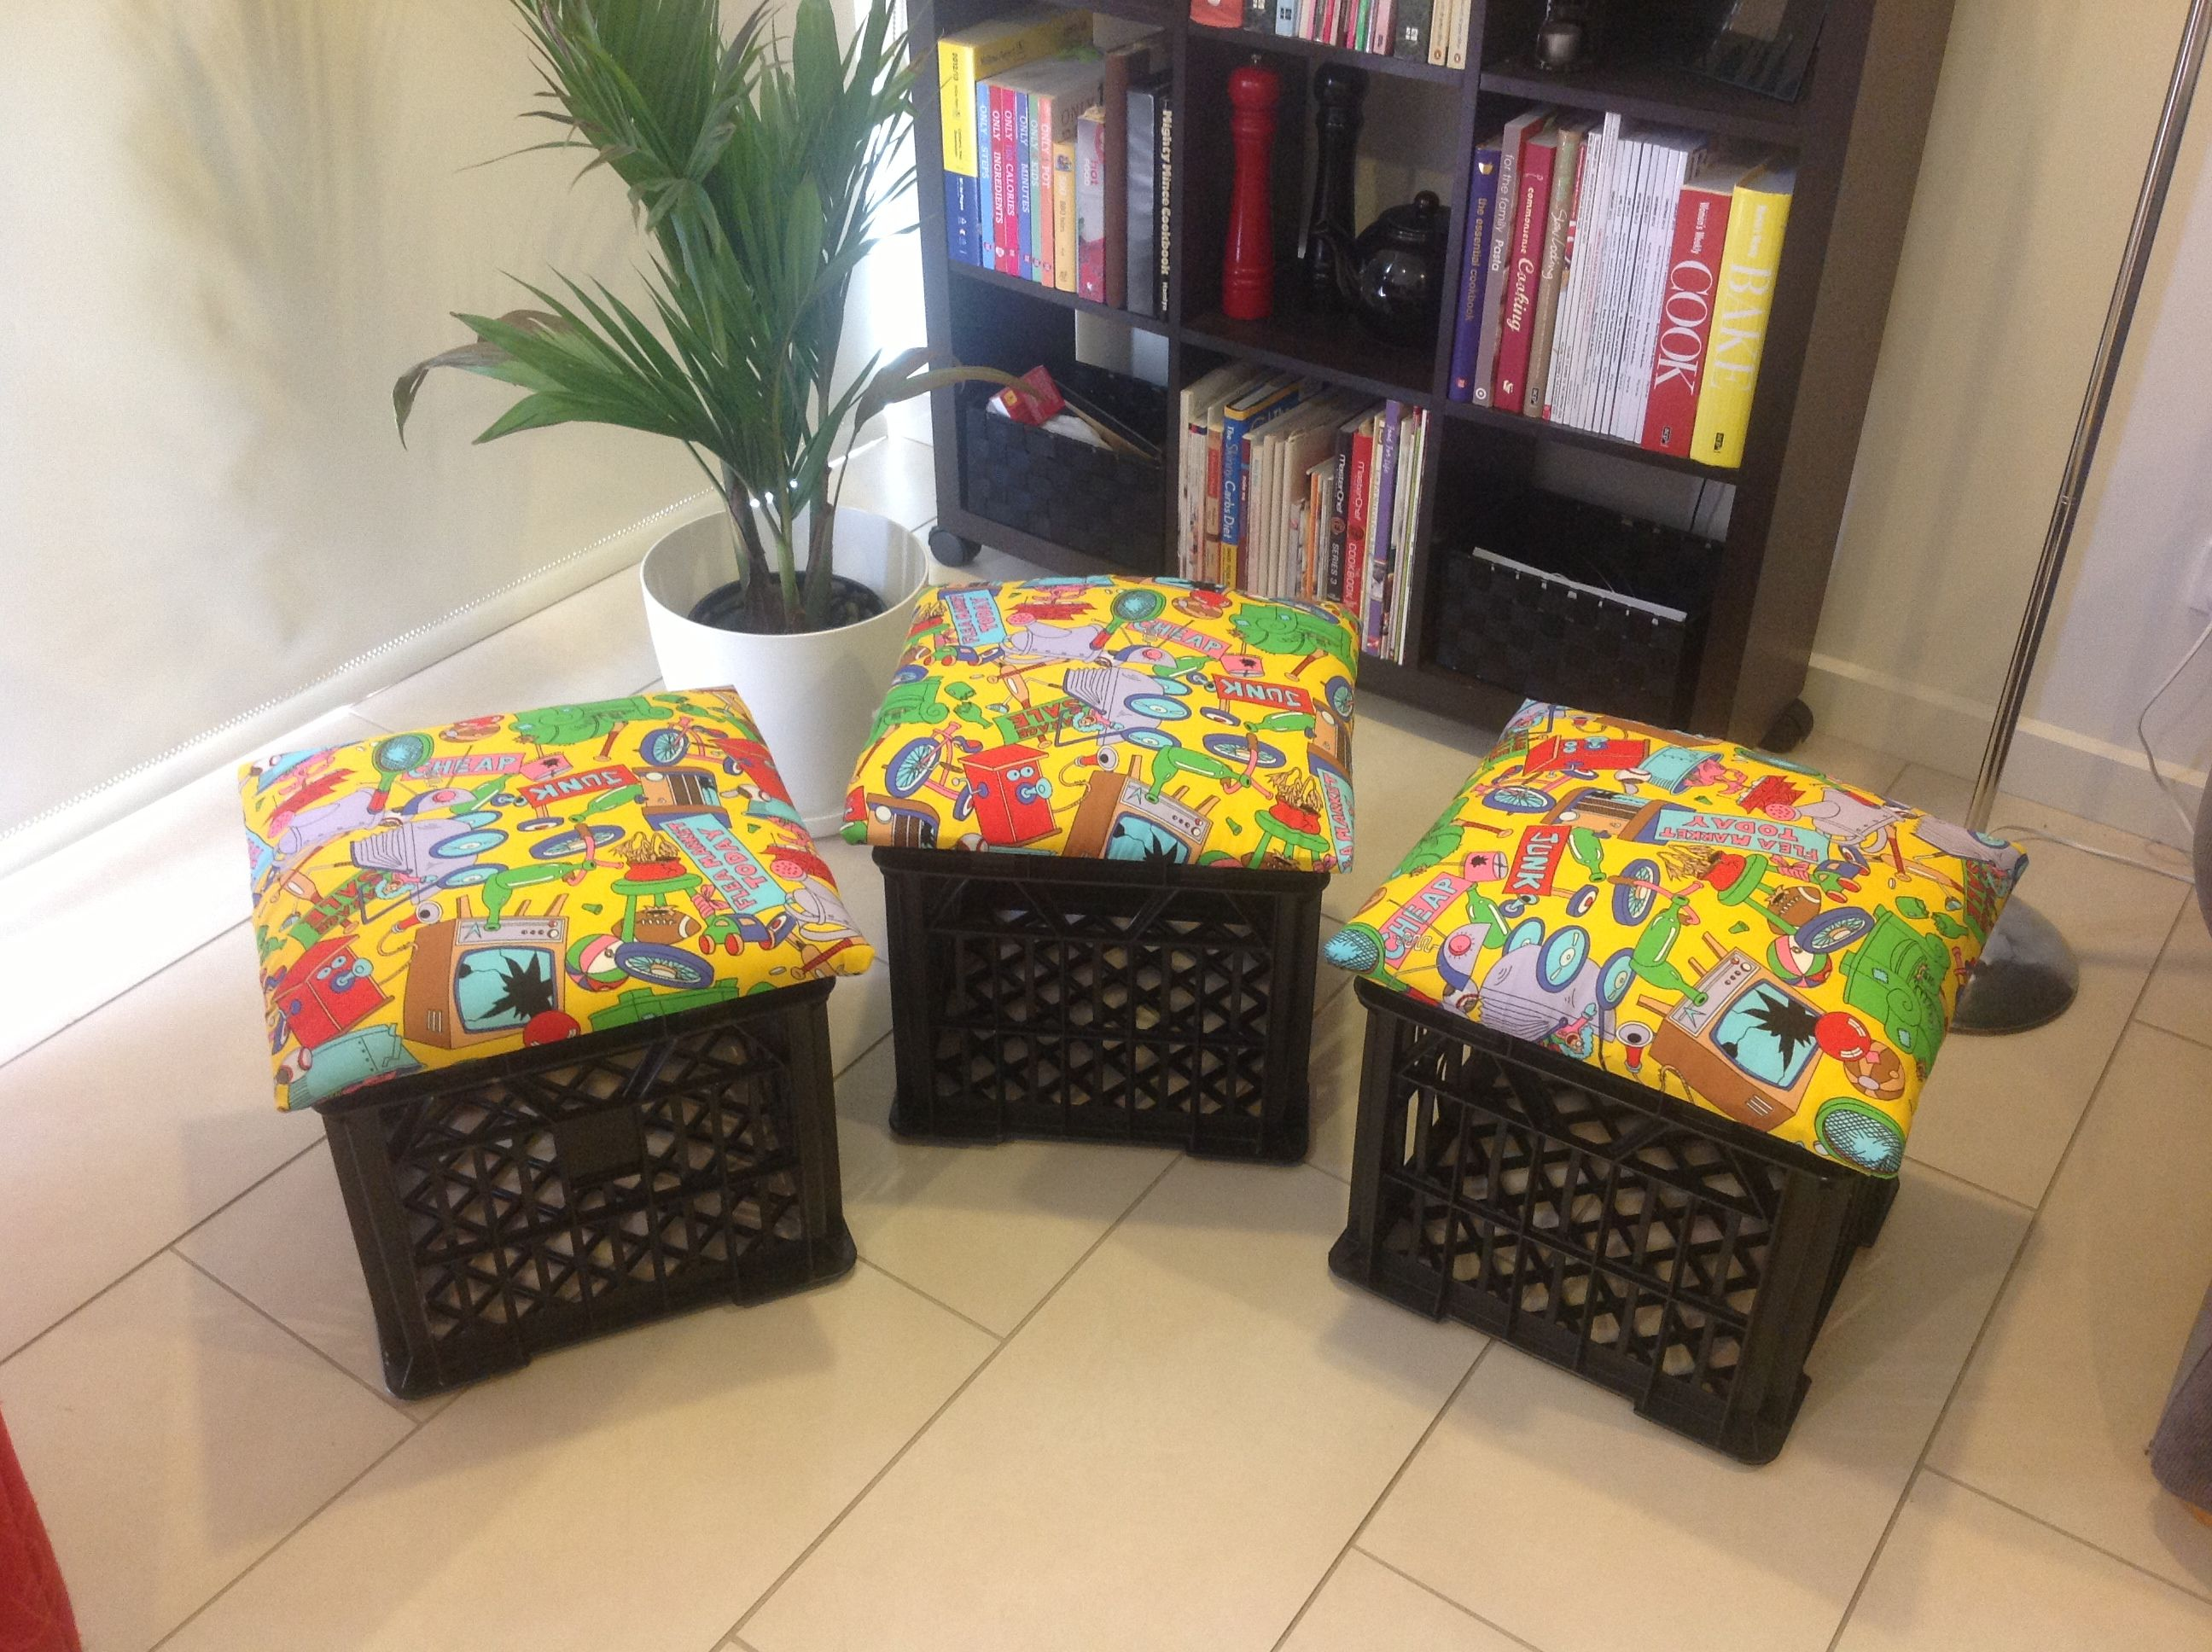 Diy Milk Crate Seats With Images Crate Stools Crate Seats Milk Crate Seats